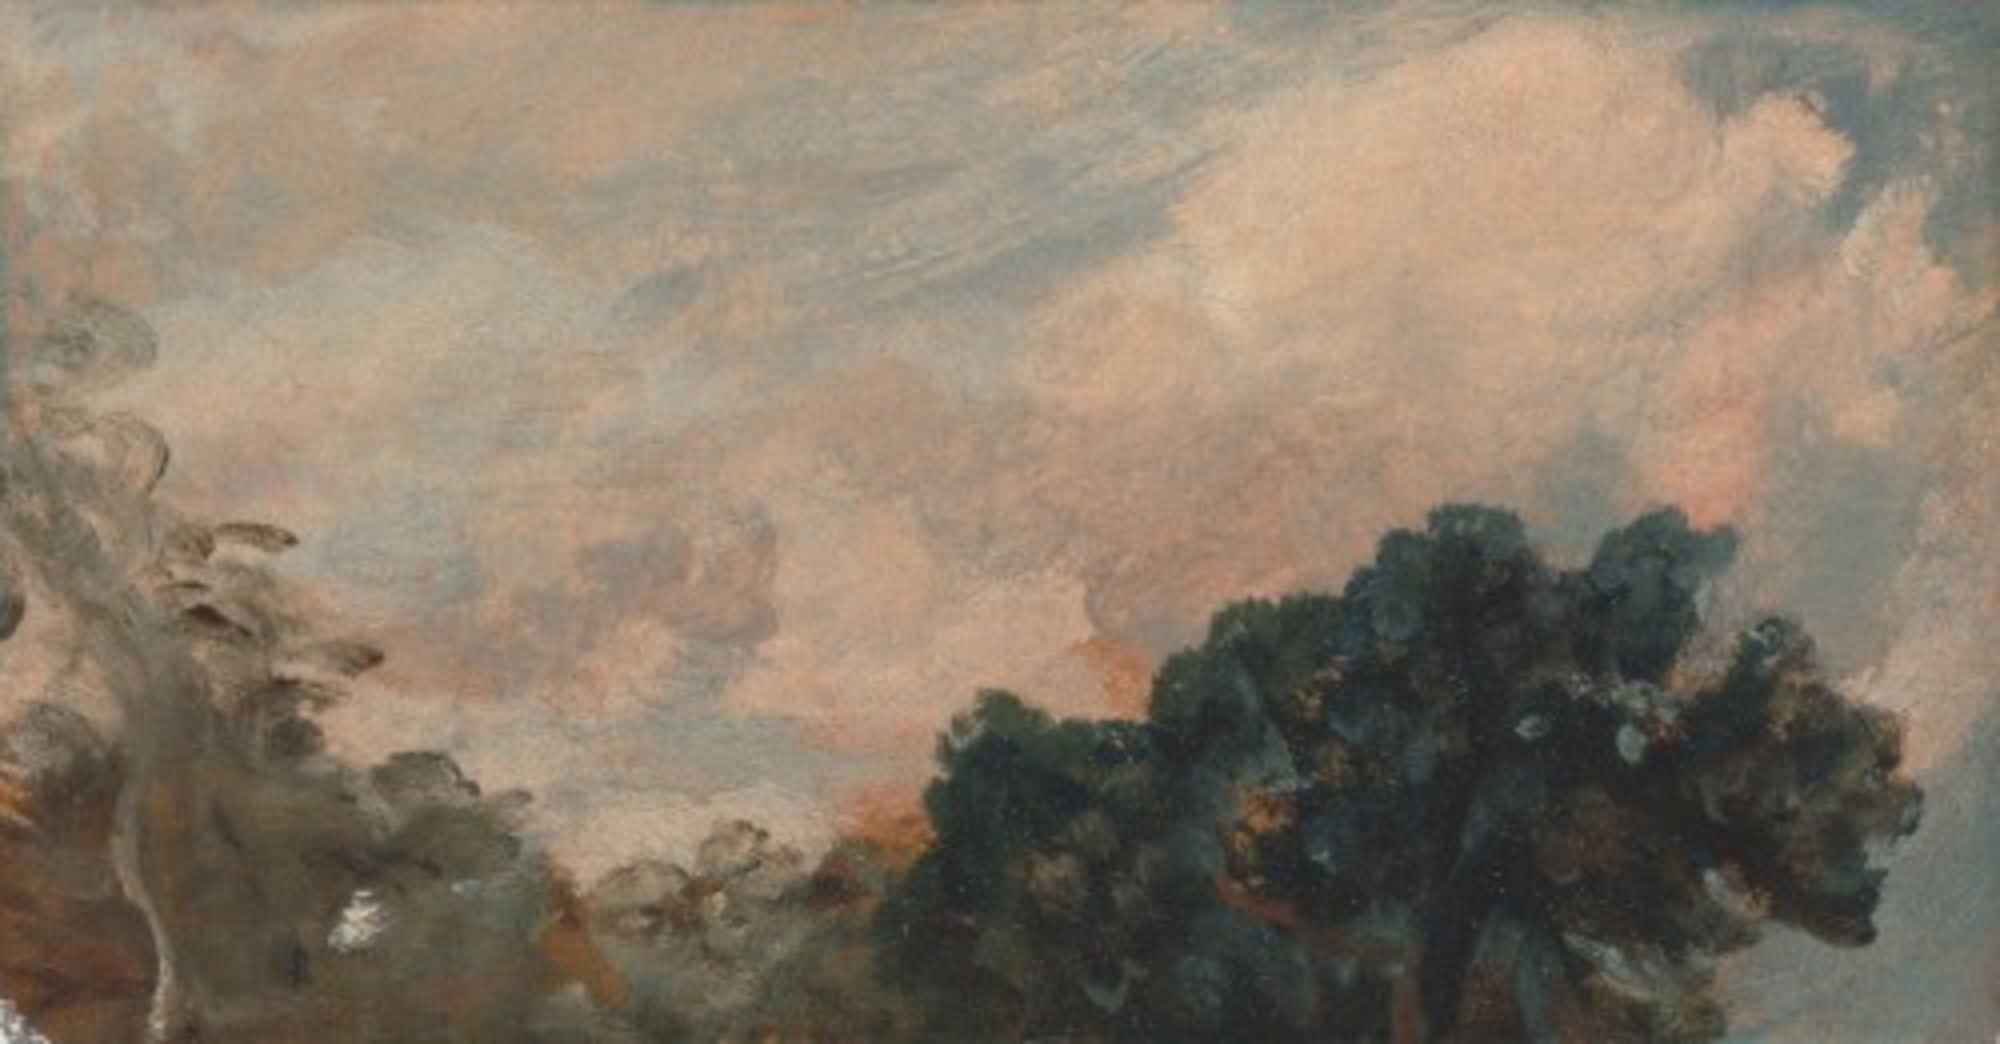 John-Constable---Cloud-Study-with-Trees---Google-Art-Project.jpg